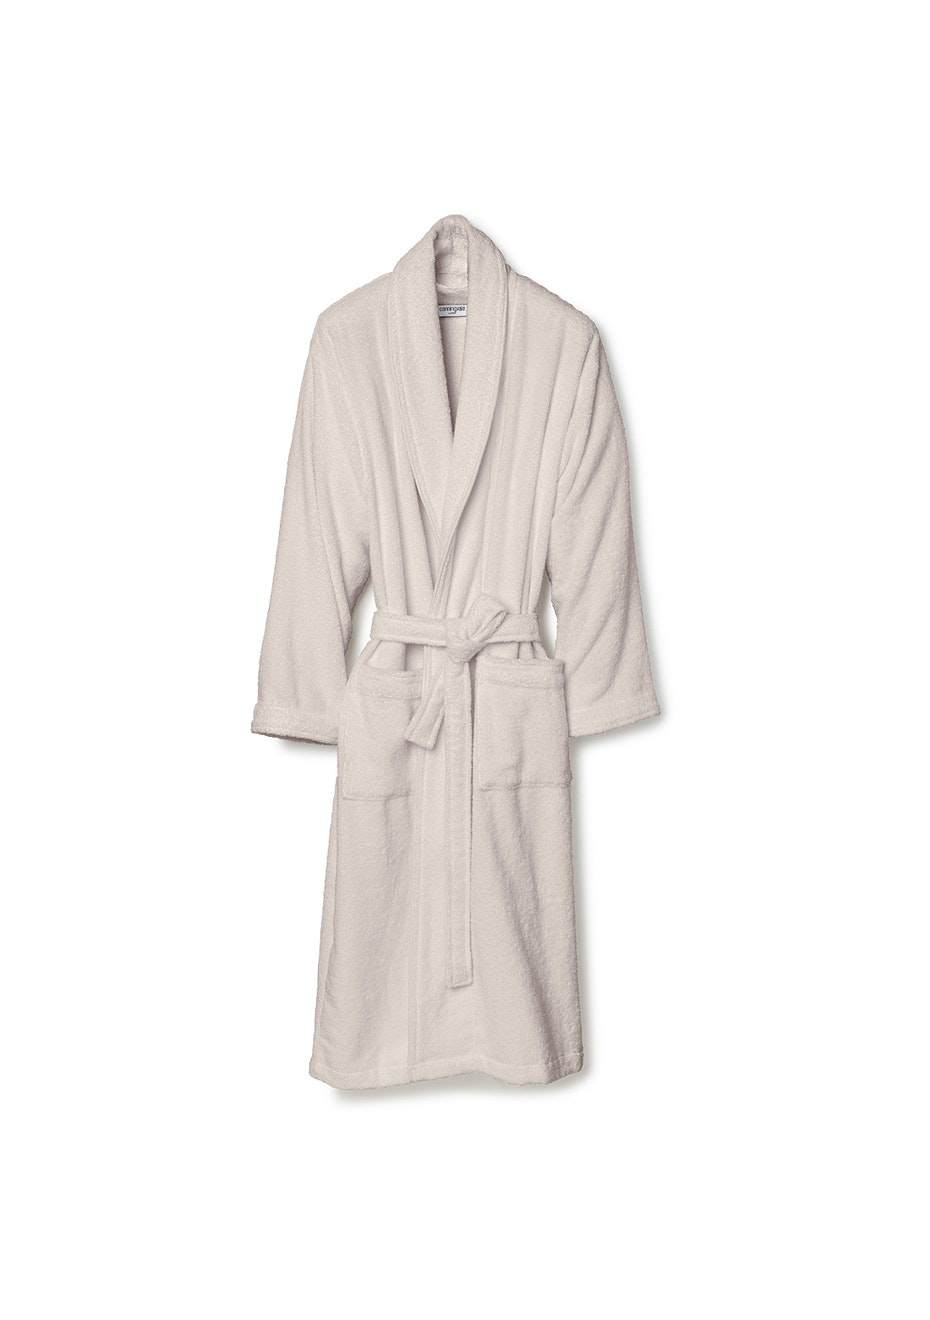 Canningvale - Large Classic Cotton Terry Bathrobe - Natural